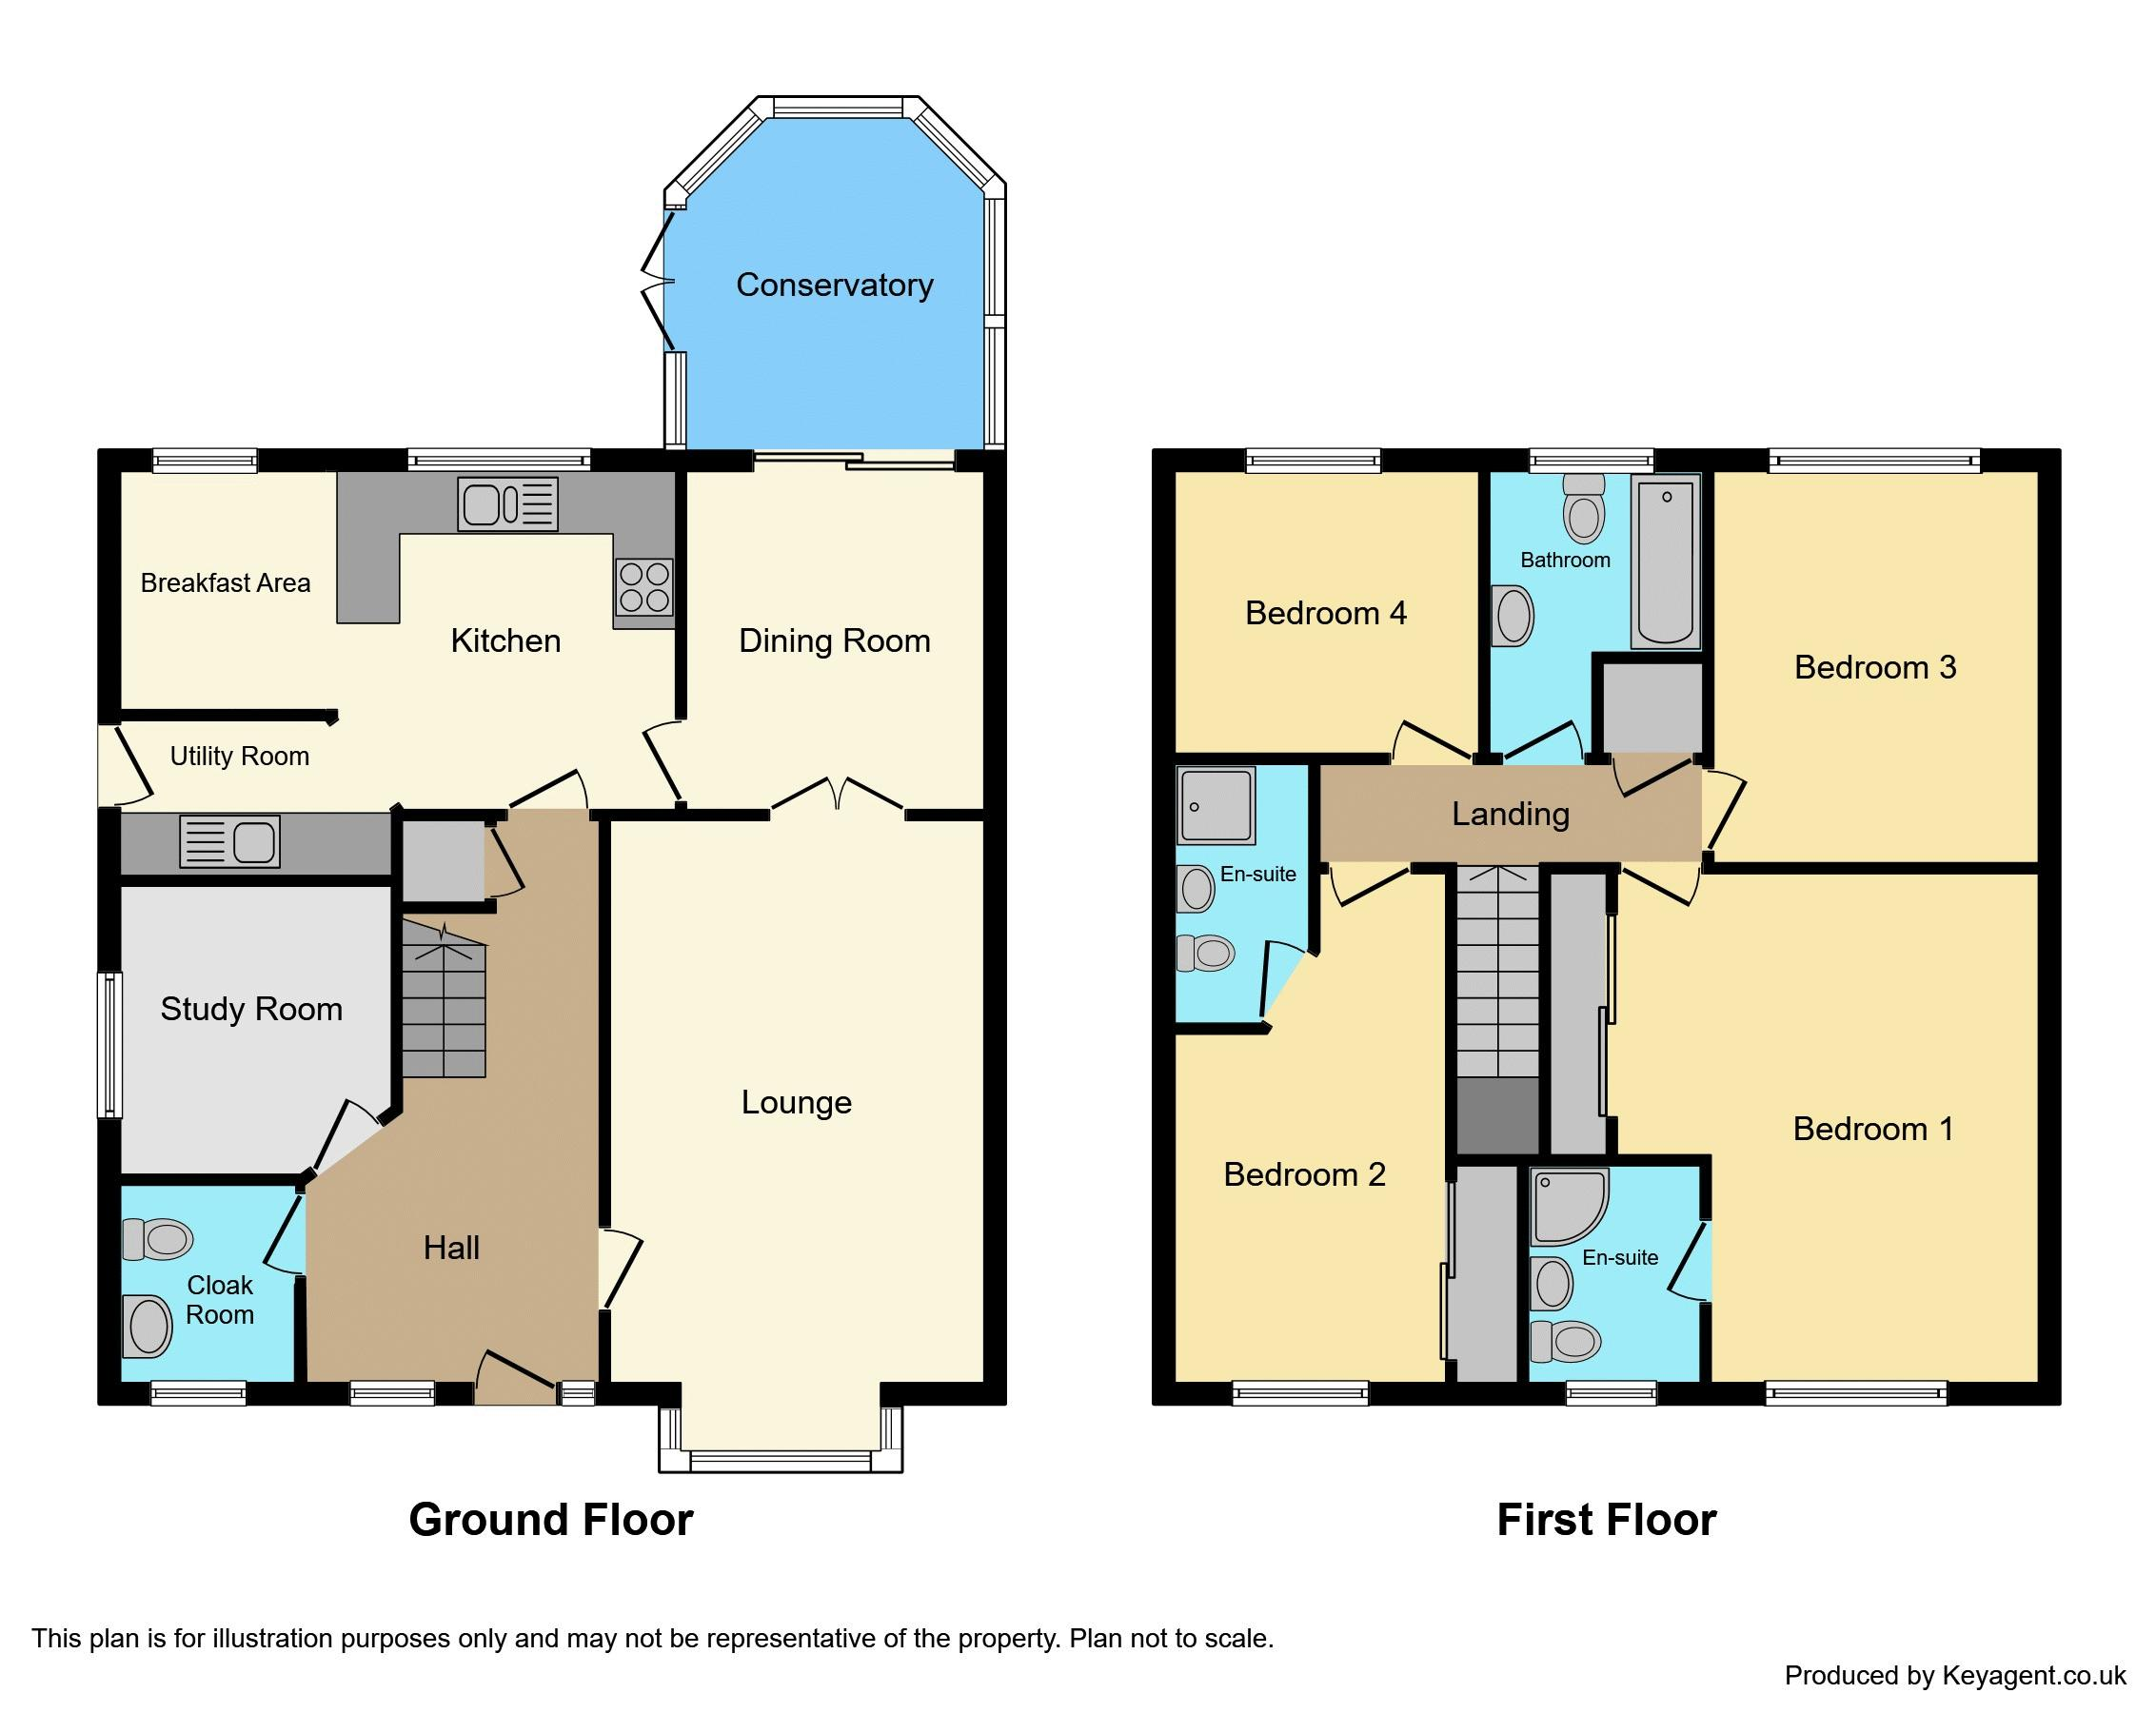 Floorplan - Colour